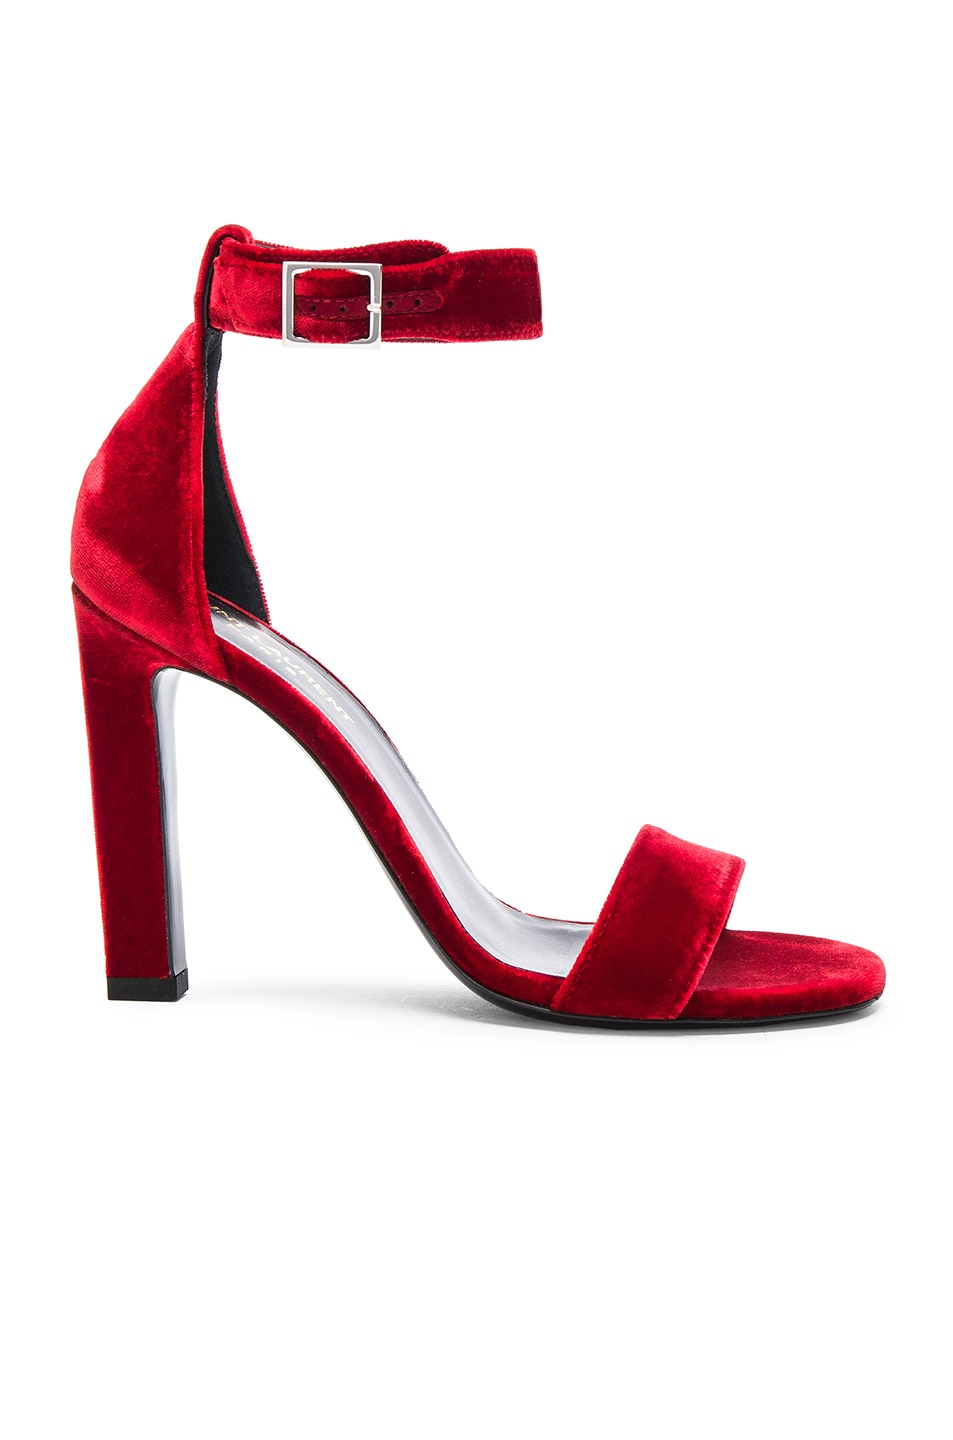 outlet many kinds of sale store Saint Laurent Velvet Ankle Strap Wedges sale cost Cheapest sale online qdBabaYCH